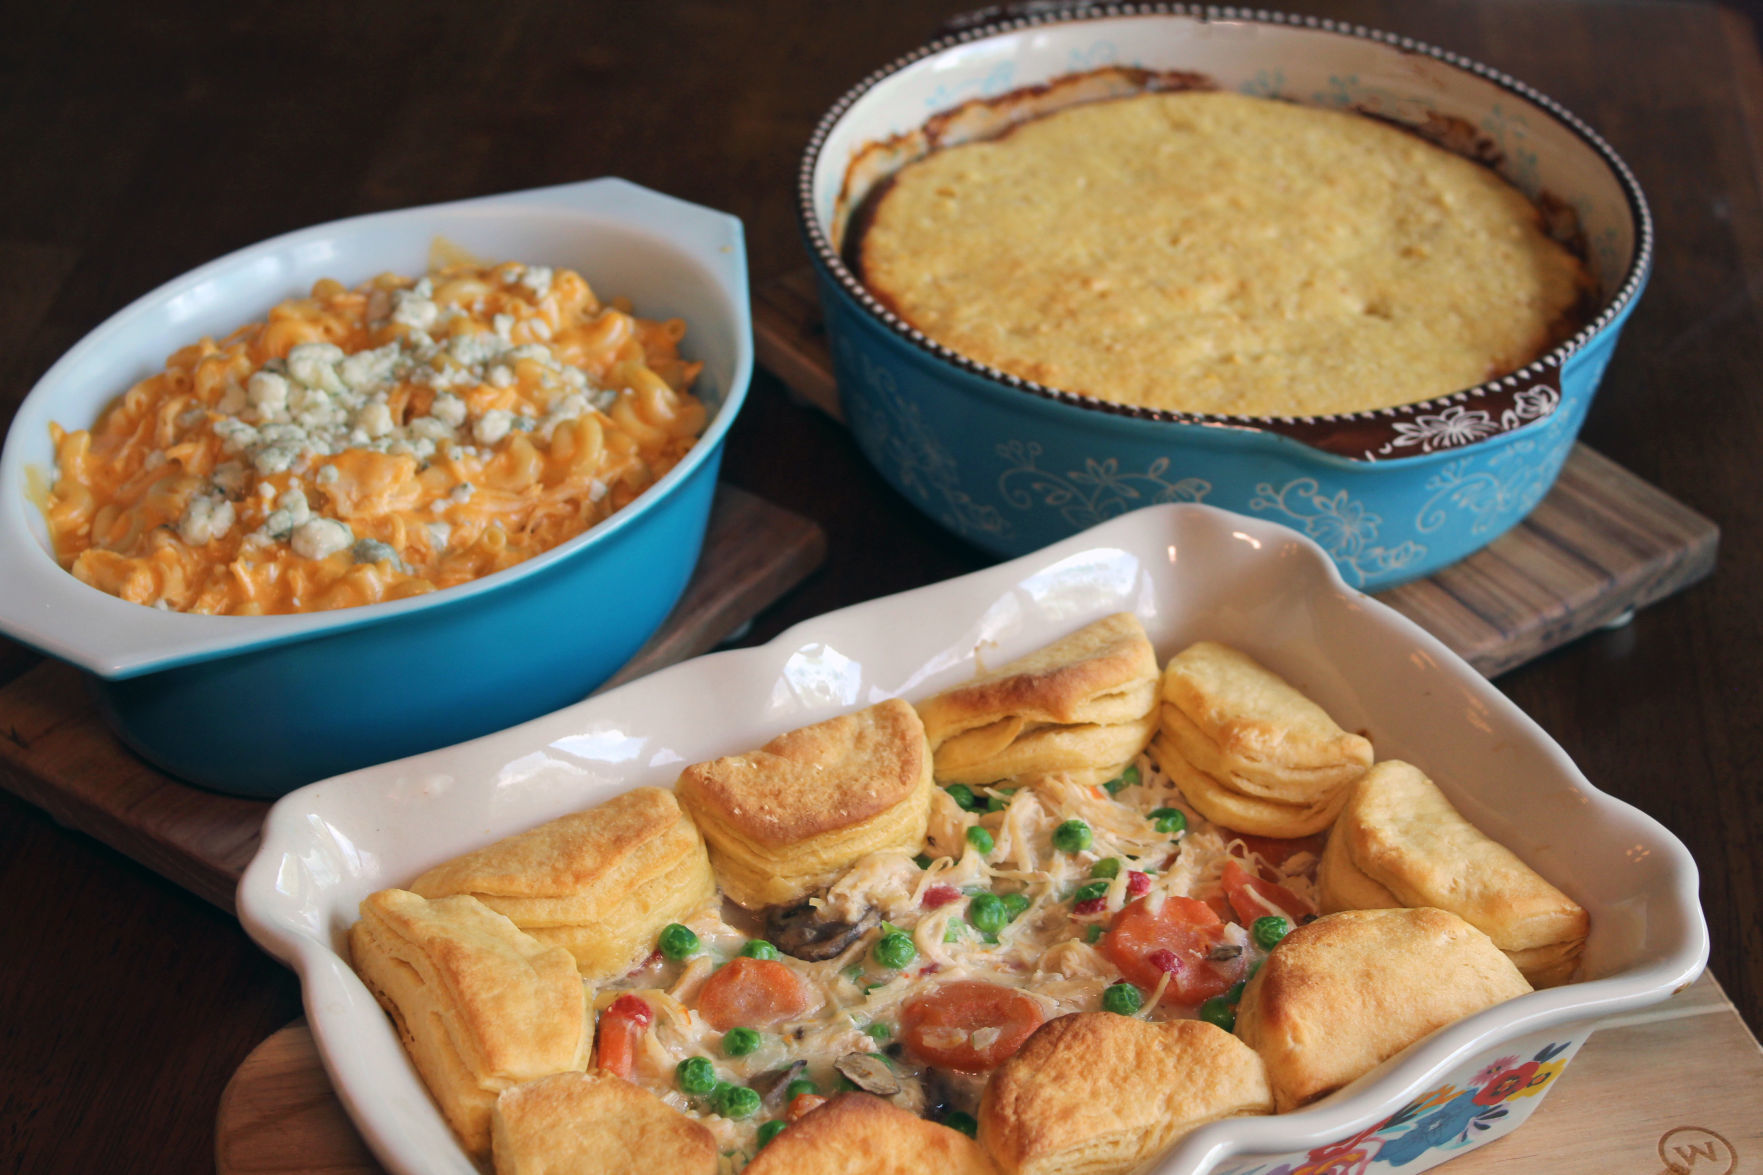 Taste | Casseroles: Combine meat, starch, vegetables, sauce